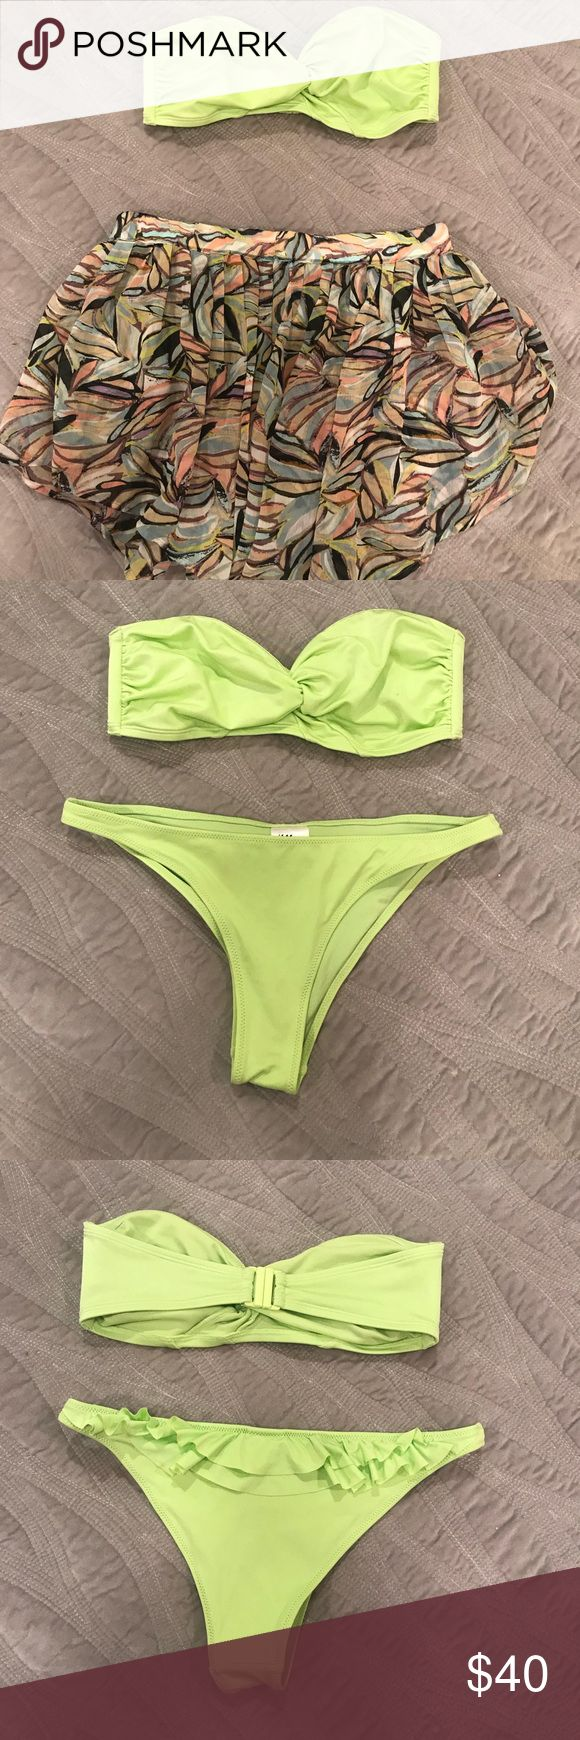 Neon green Bikini & coverup skirt Brand new never worn!! Super cute beach/pool outfit!! H&M neon green bandeau top bikini with cheeky ruffle bottoms & matching sheer coverup skirt! Skirt is cut like a V - shorter on sides and longer in front/back.   Skirt - small Bikini top - 8 Bikini bottom - 4  Brand H&M. (H&M generally runs small. I would compare the top to a sm/md and bottom to a small.) H&M Swim Bikinis